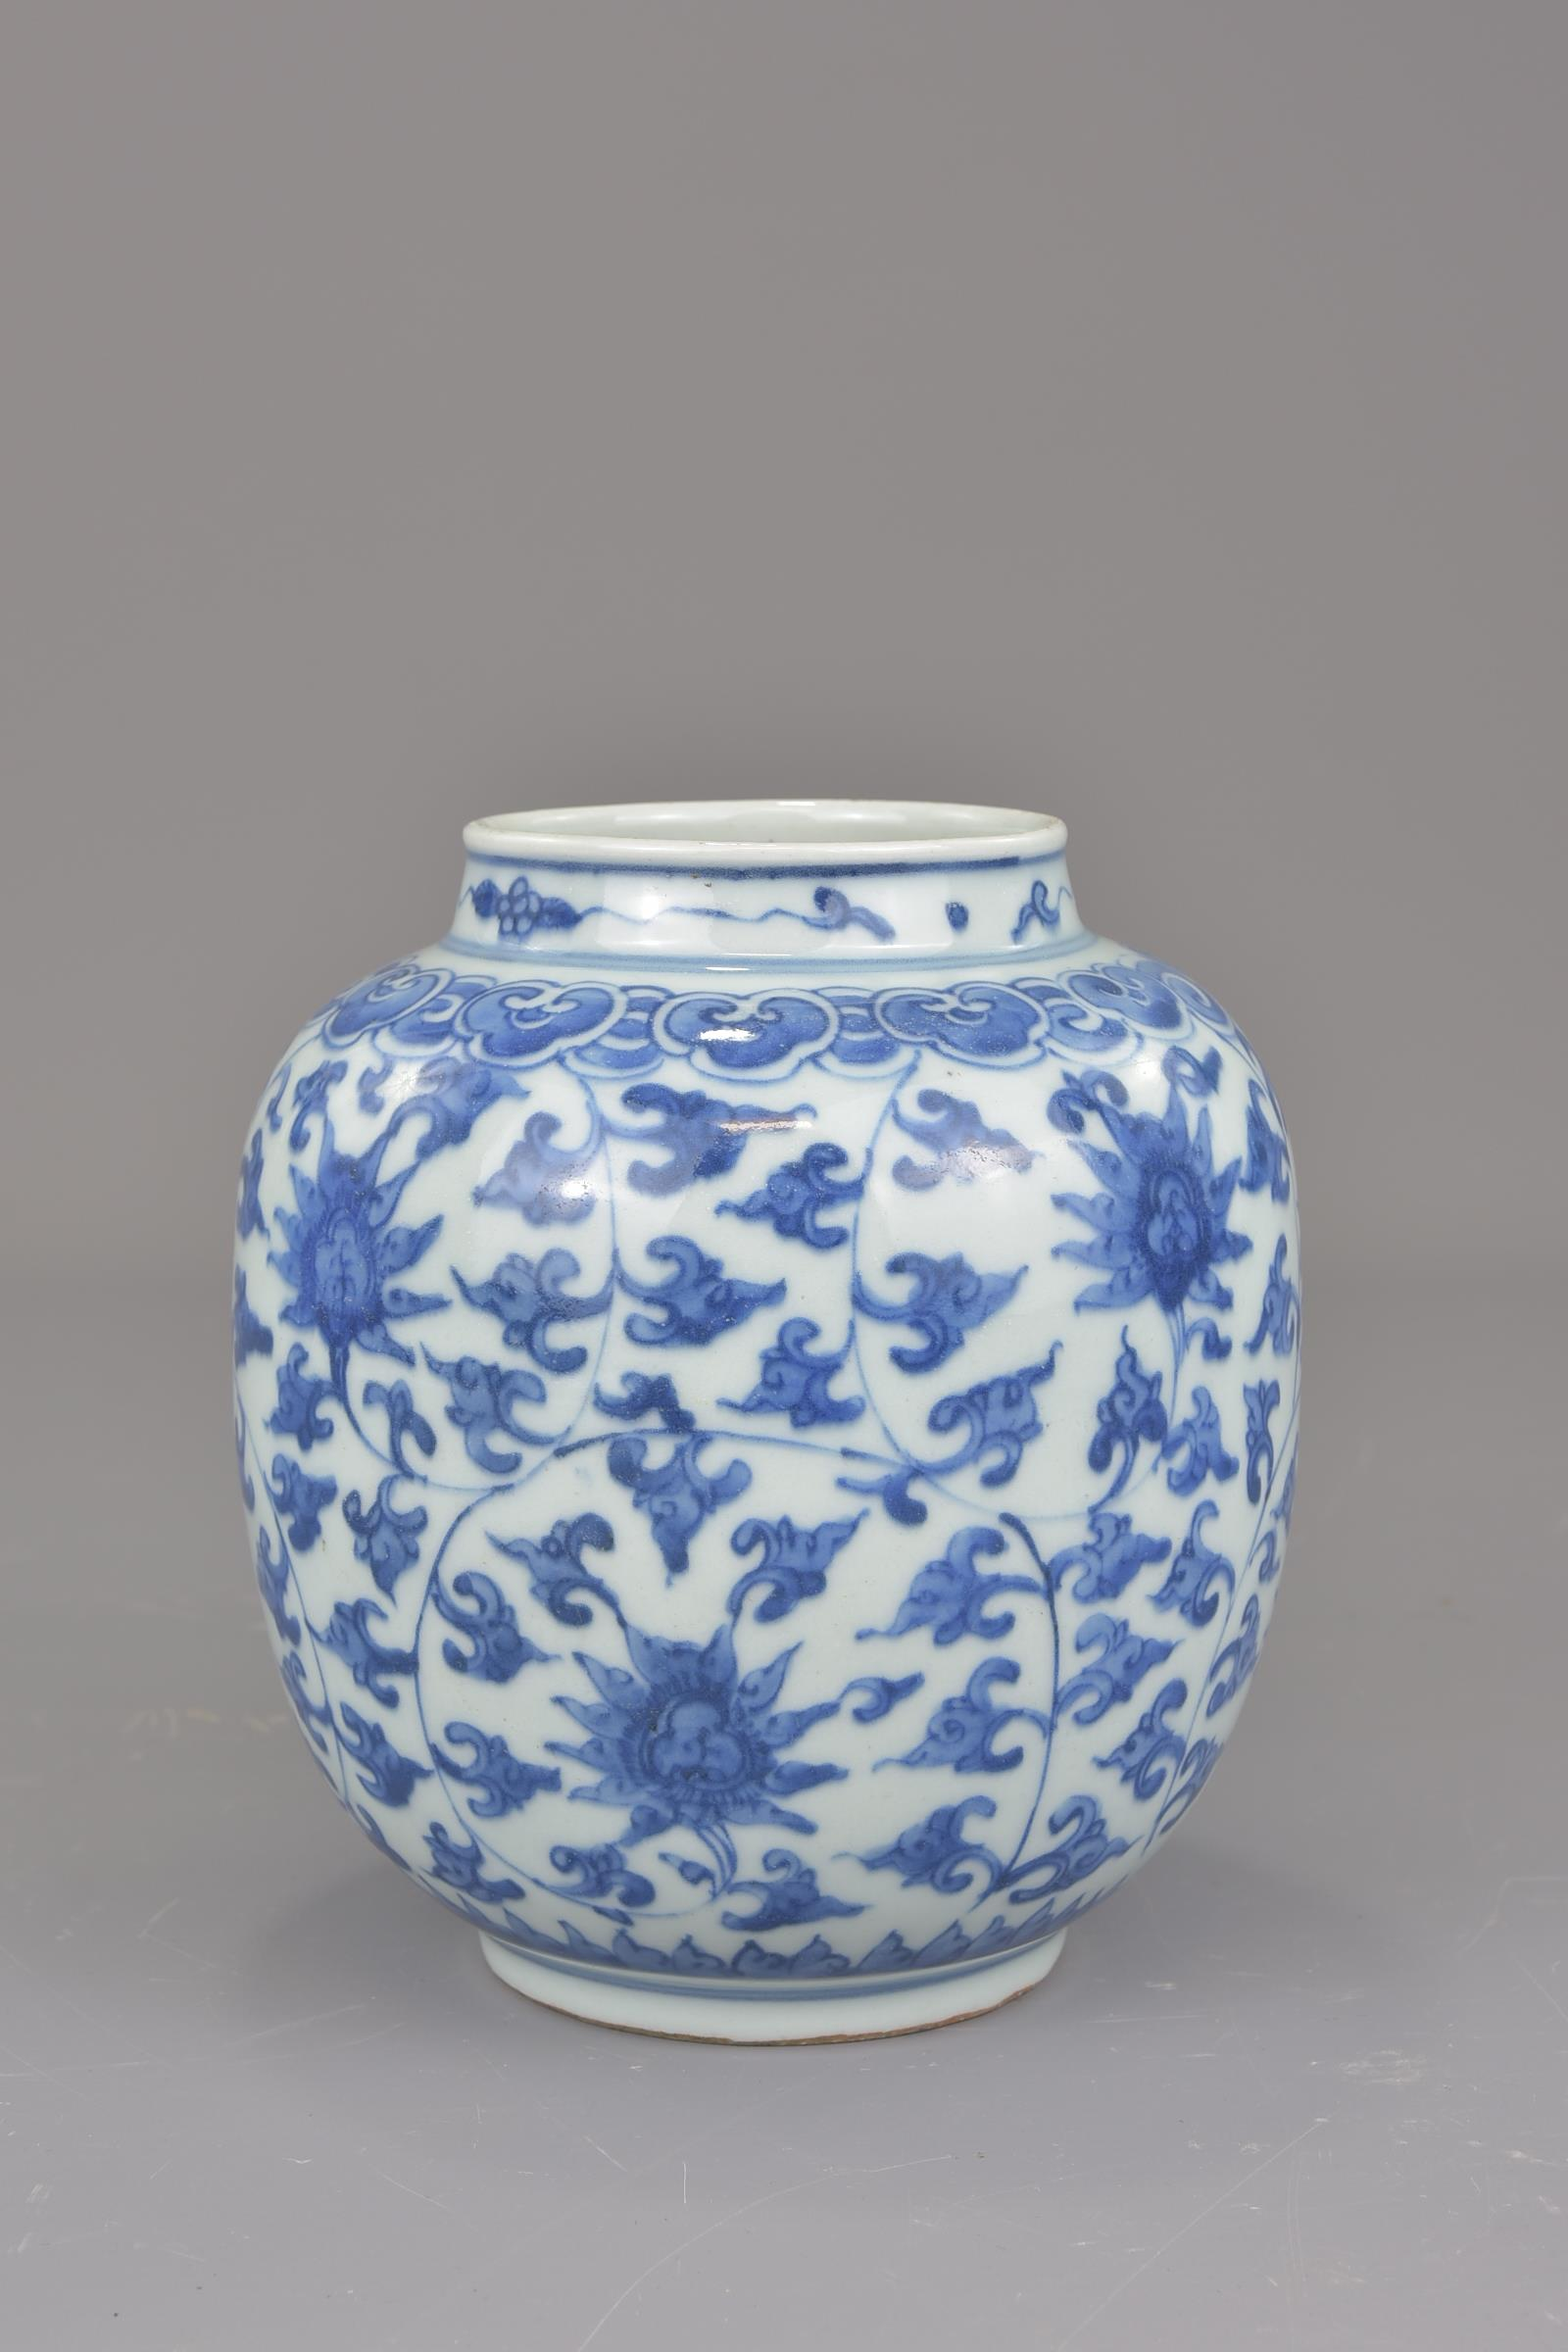 Lot 22 - A Chinese blue and white porcelain jar possibly Ming painted with a floral design. 16cm tall